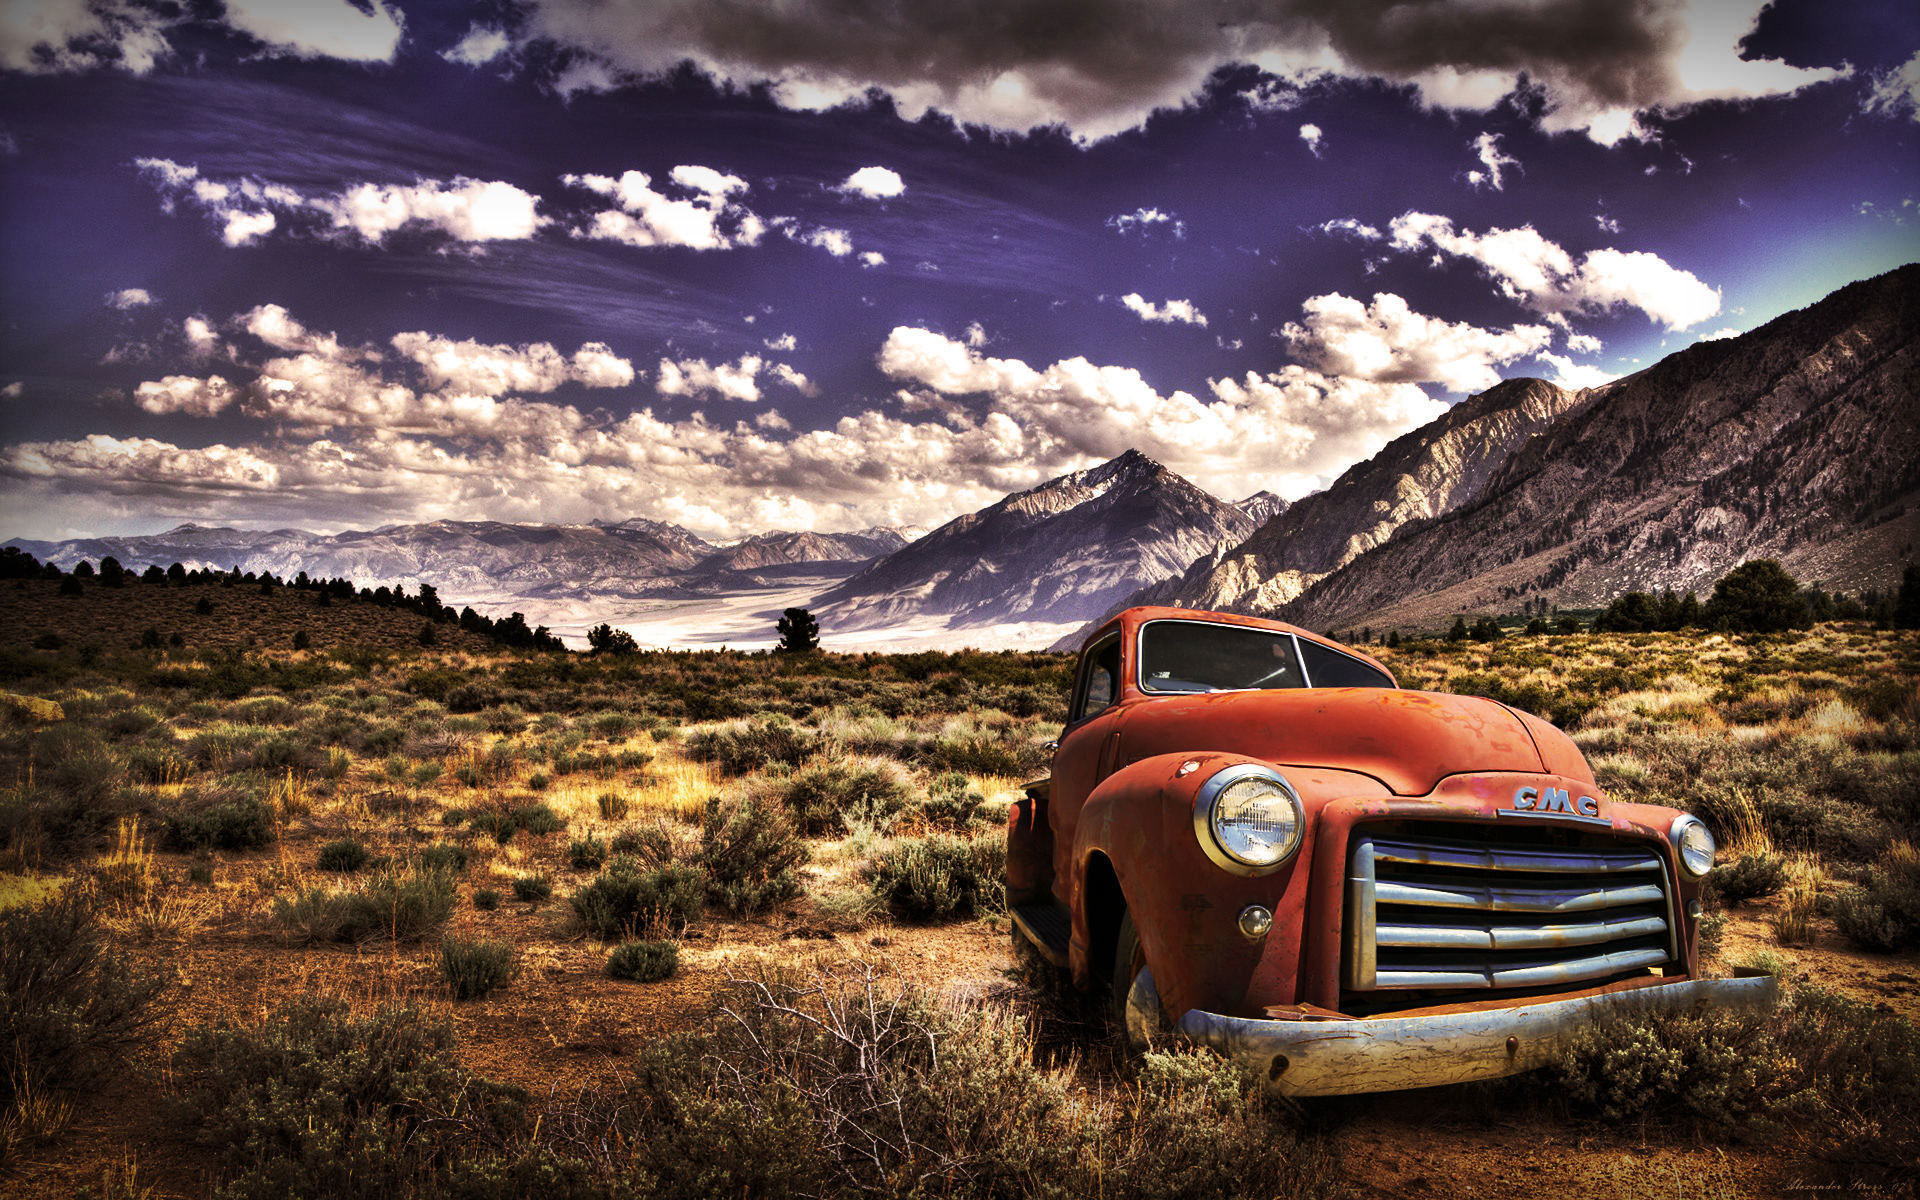 Chevy Trucks Wallpapers 45 Images 1949 Truck Lowrider 1920x1080 Wallpaper Cave